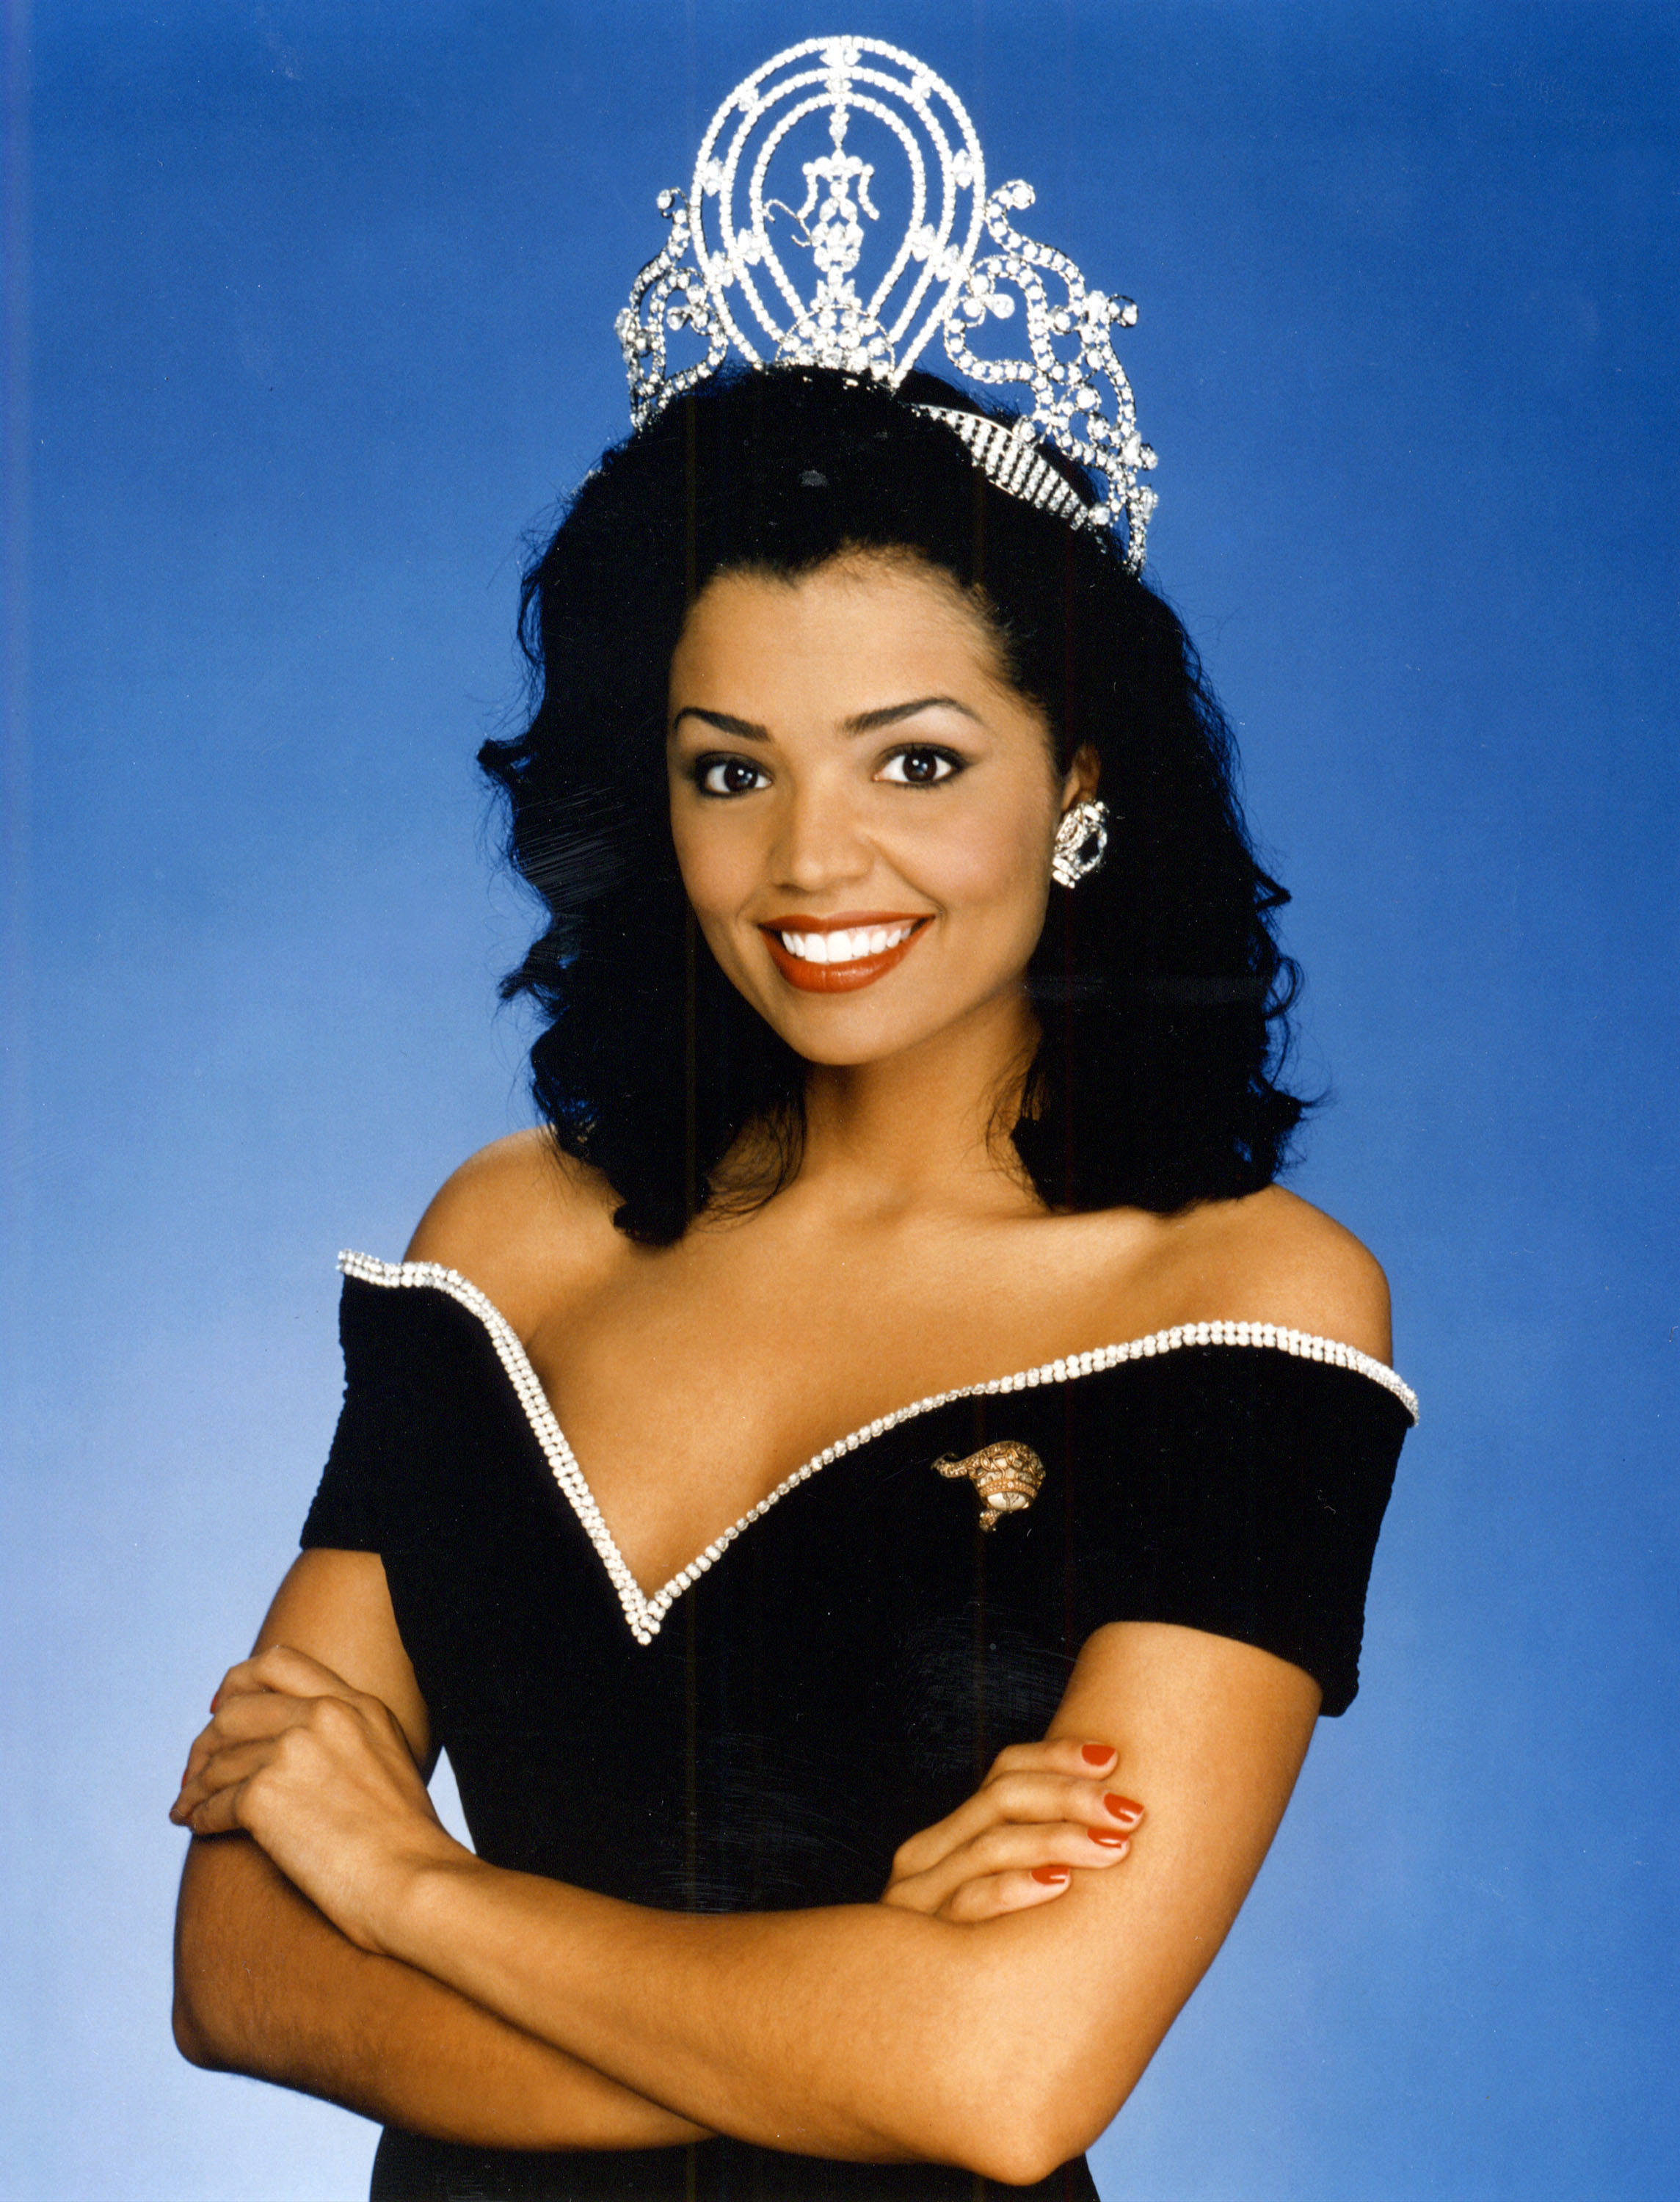 chelsi smith, miss universe 1995. † - Página 2 Image111